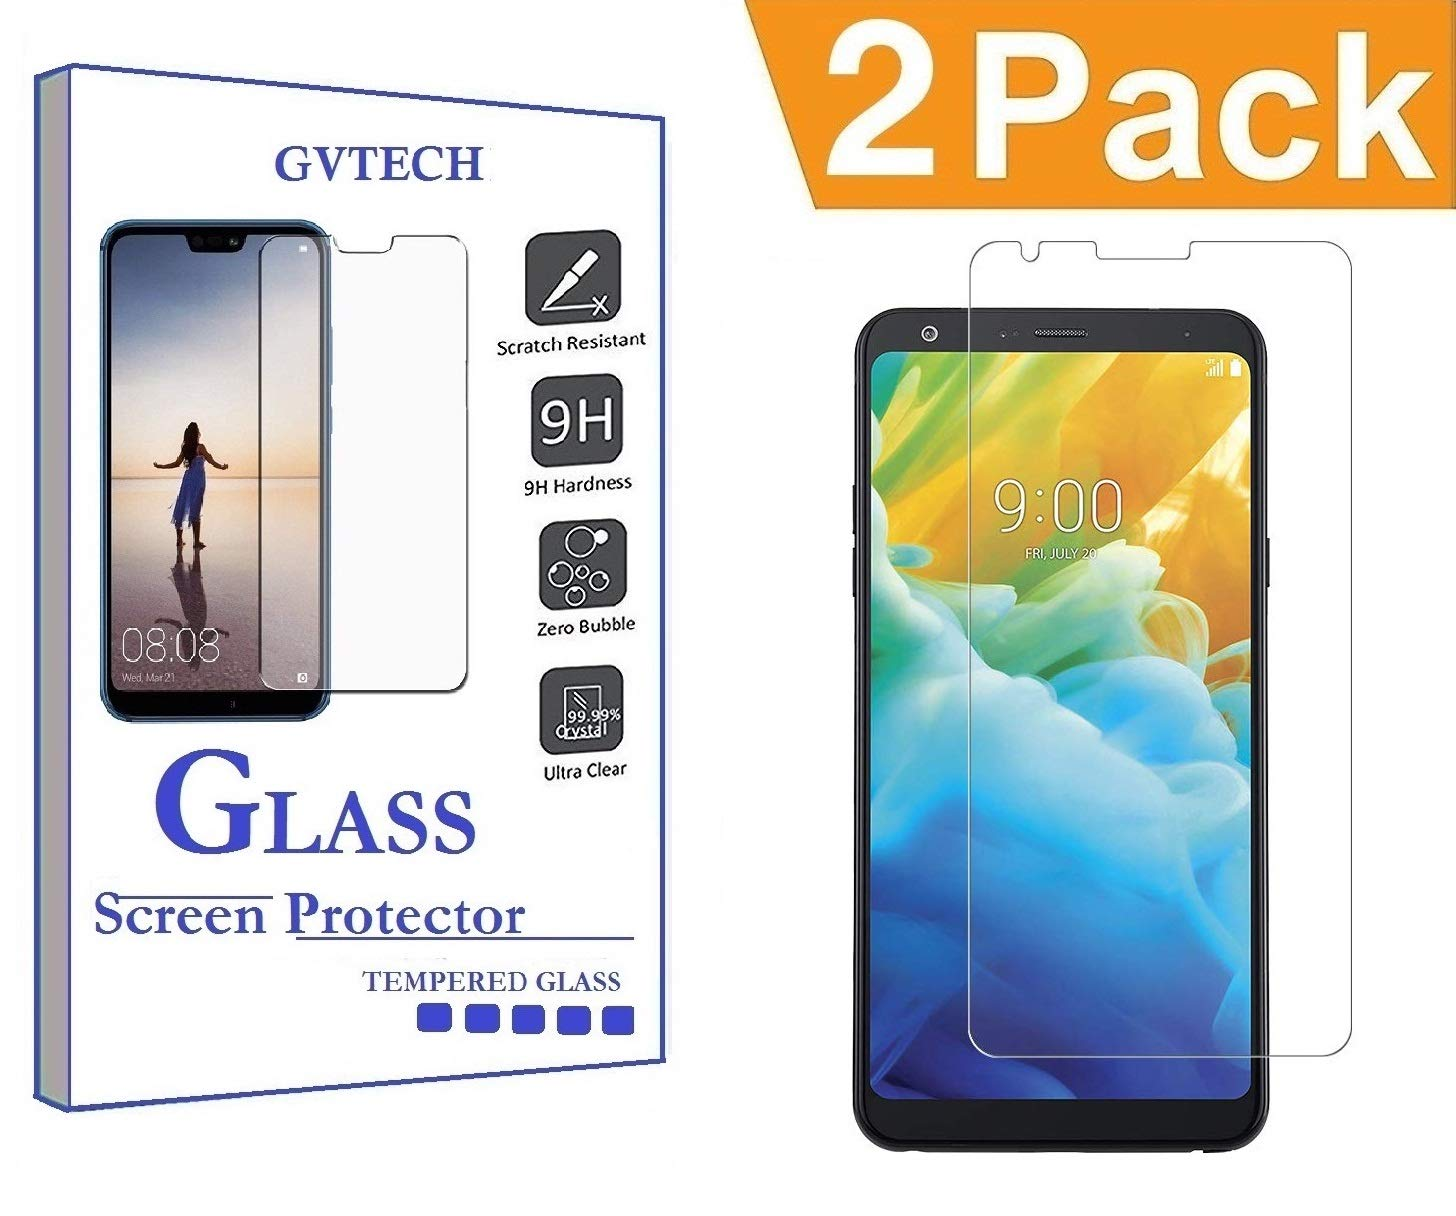 GVTECH Screen Protector LG Stylo 4 Plus, Tempered Glass Screen Protector[0.3mm, 2.5D][Bubble-Free][9H Hardness][Easy Installation][HD Clear] for LG Stylo 4 Plus(2 Pack)